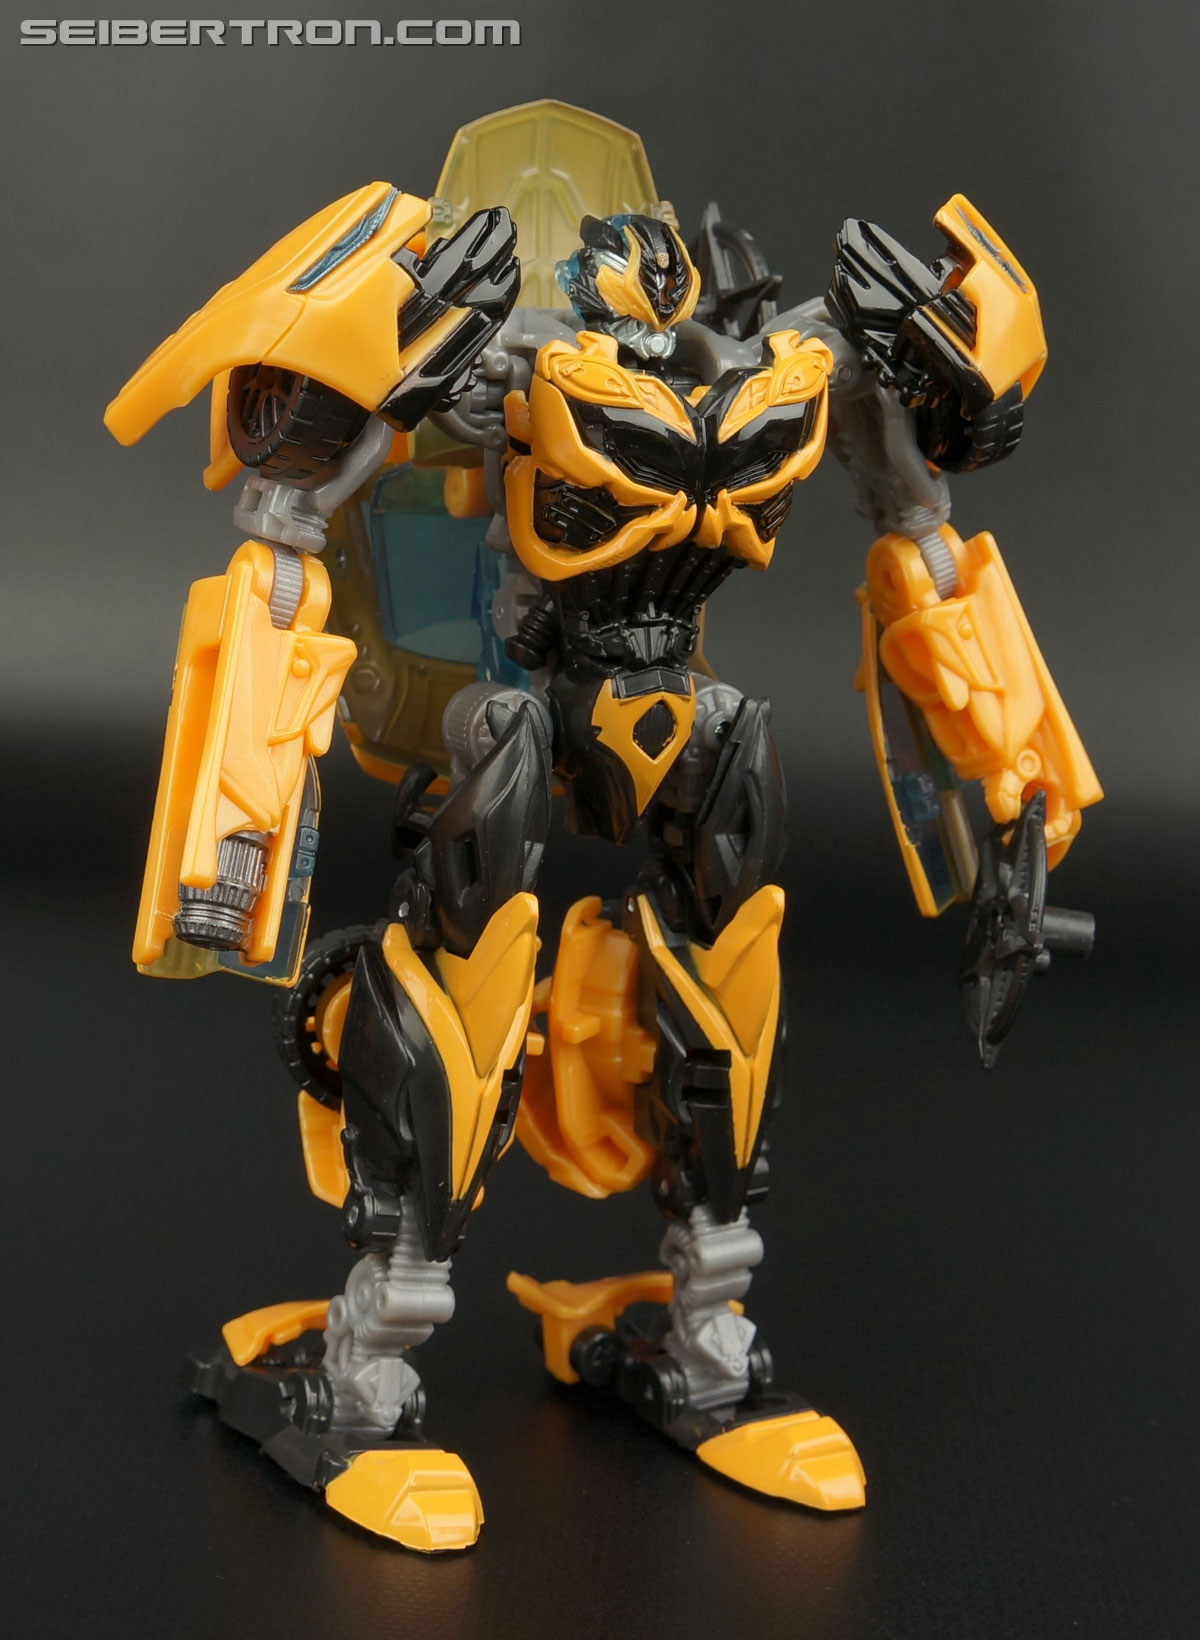 Transformers Age of Extinction: Generations Bumblebee (Image #89 of 190)